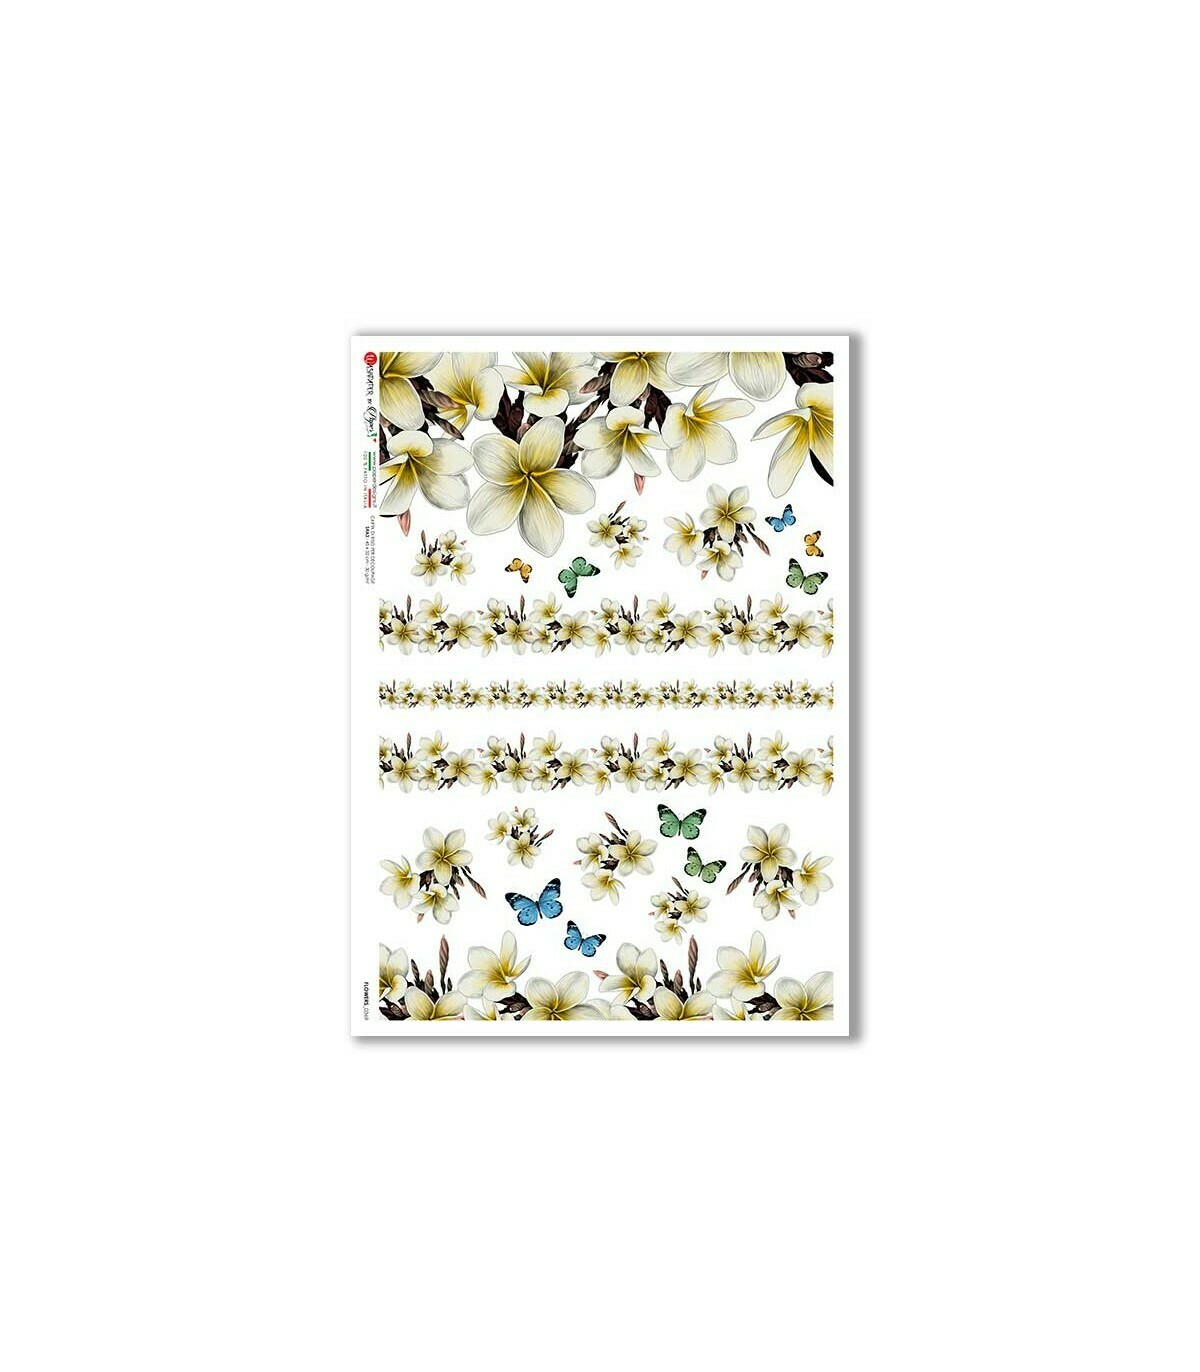 Flowers-0369 - A4 Rice Paper - Paper Designs